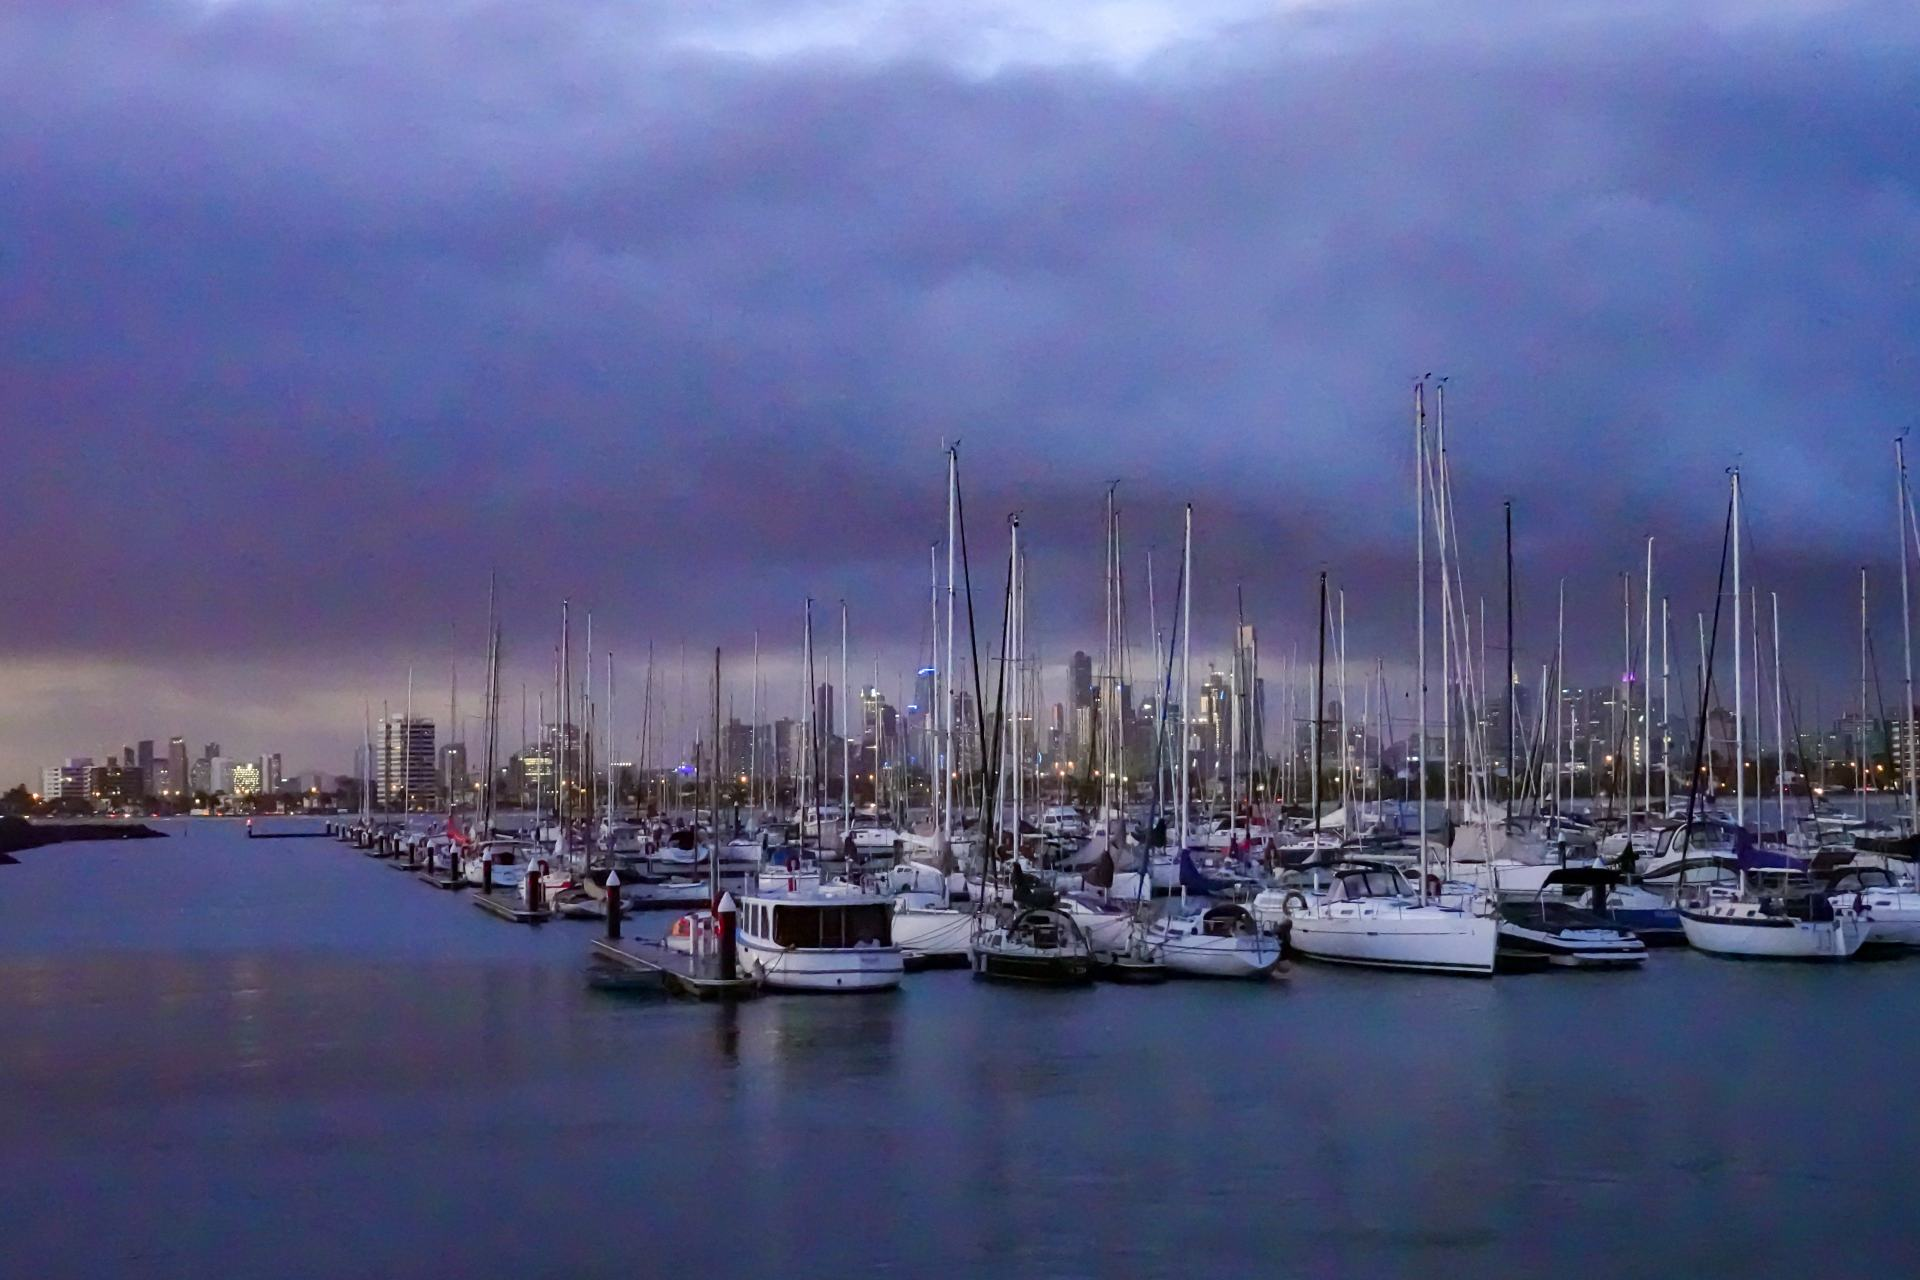 st kilda marina at night